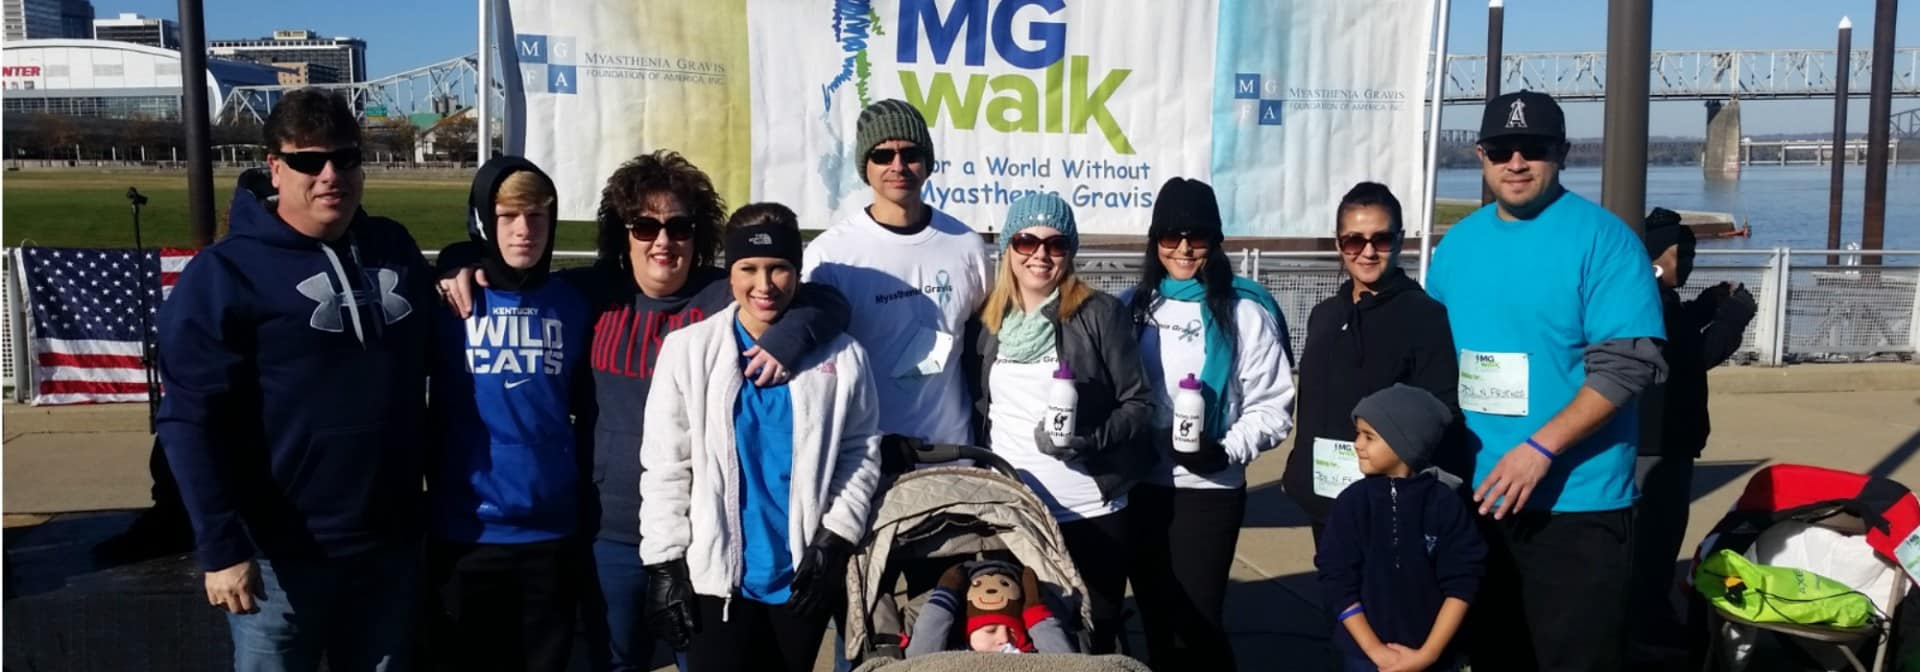 2014 Kentucky MG Walk